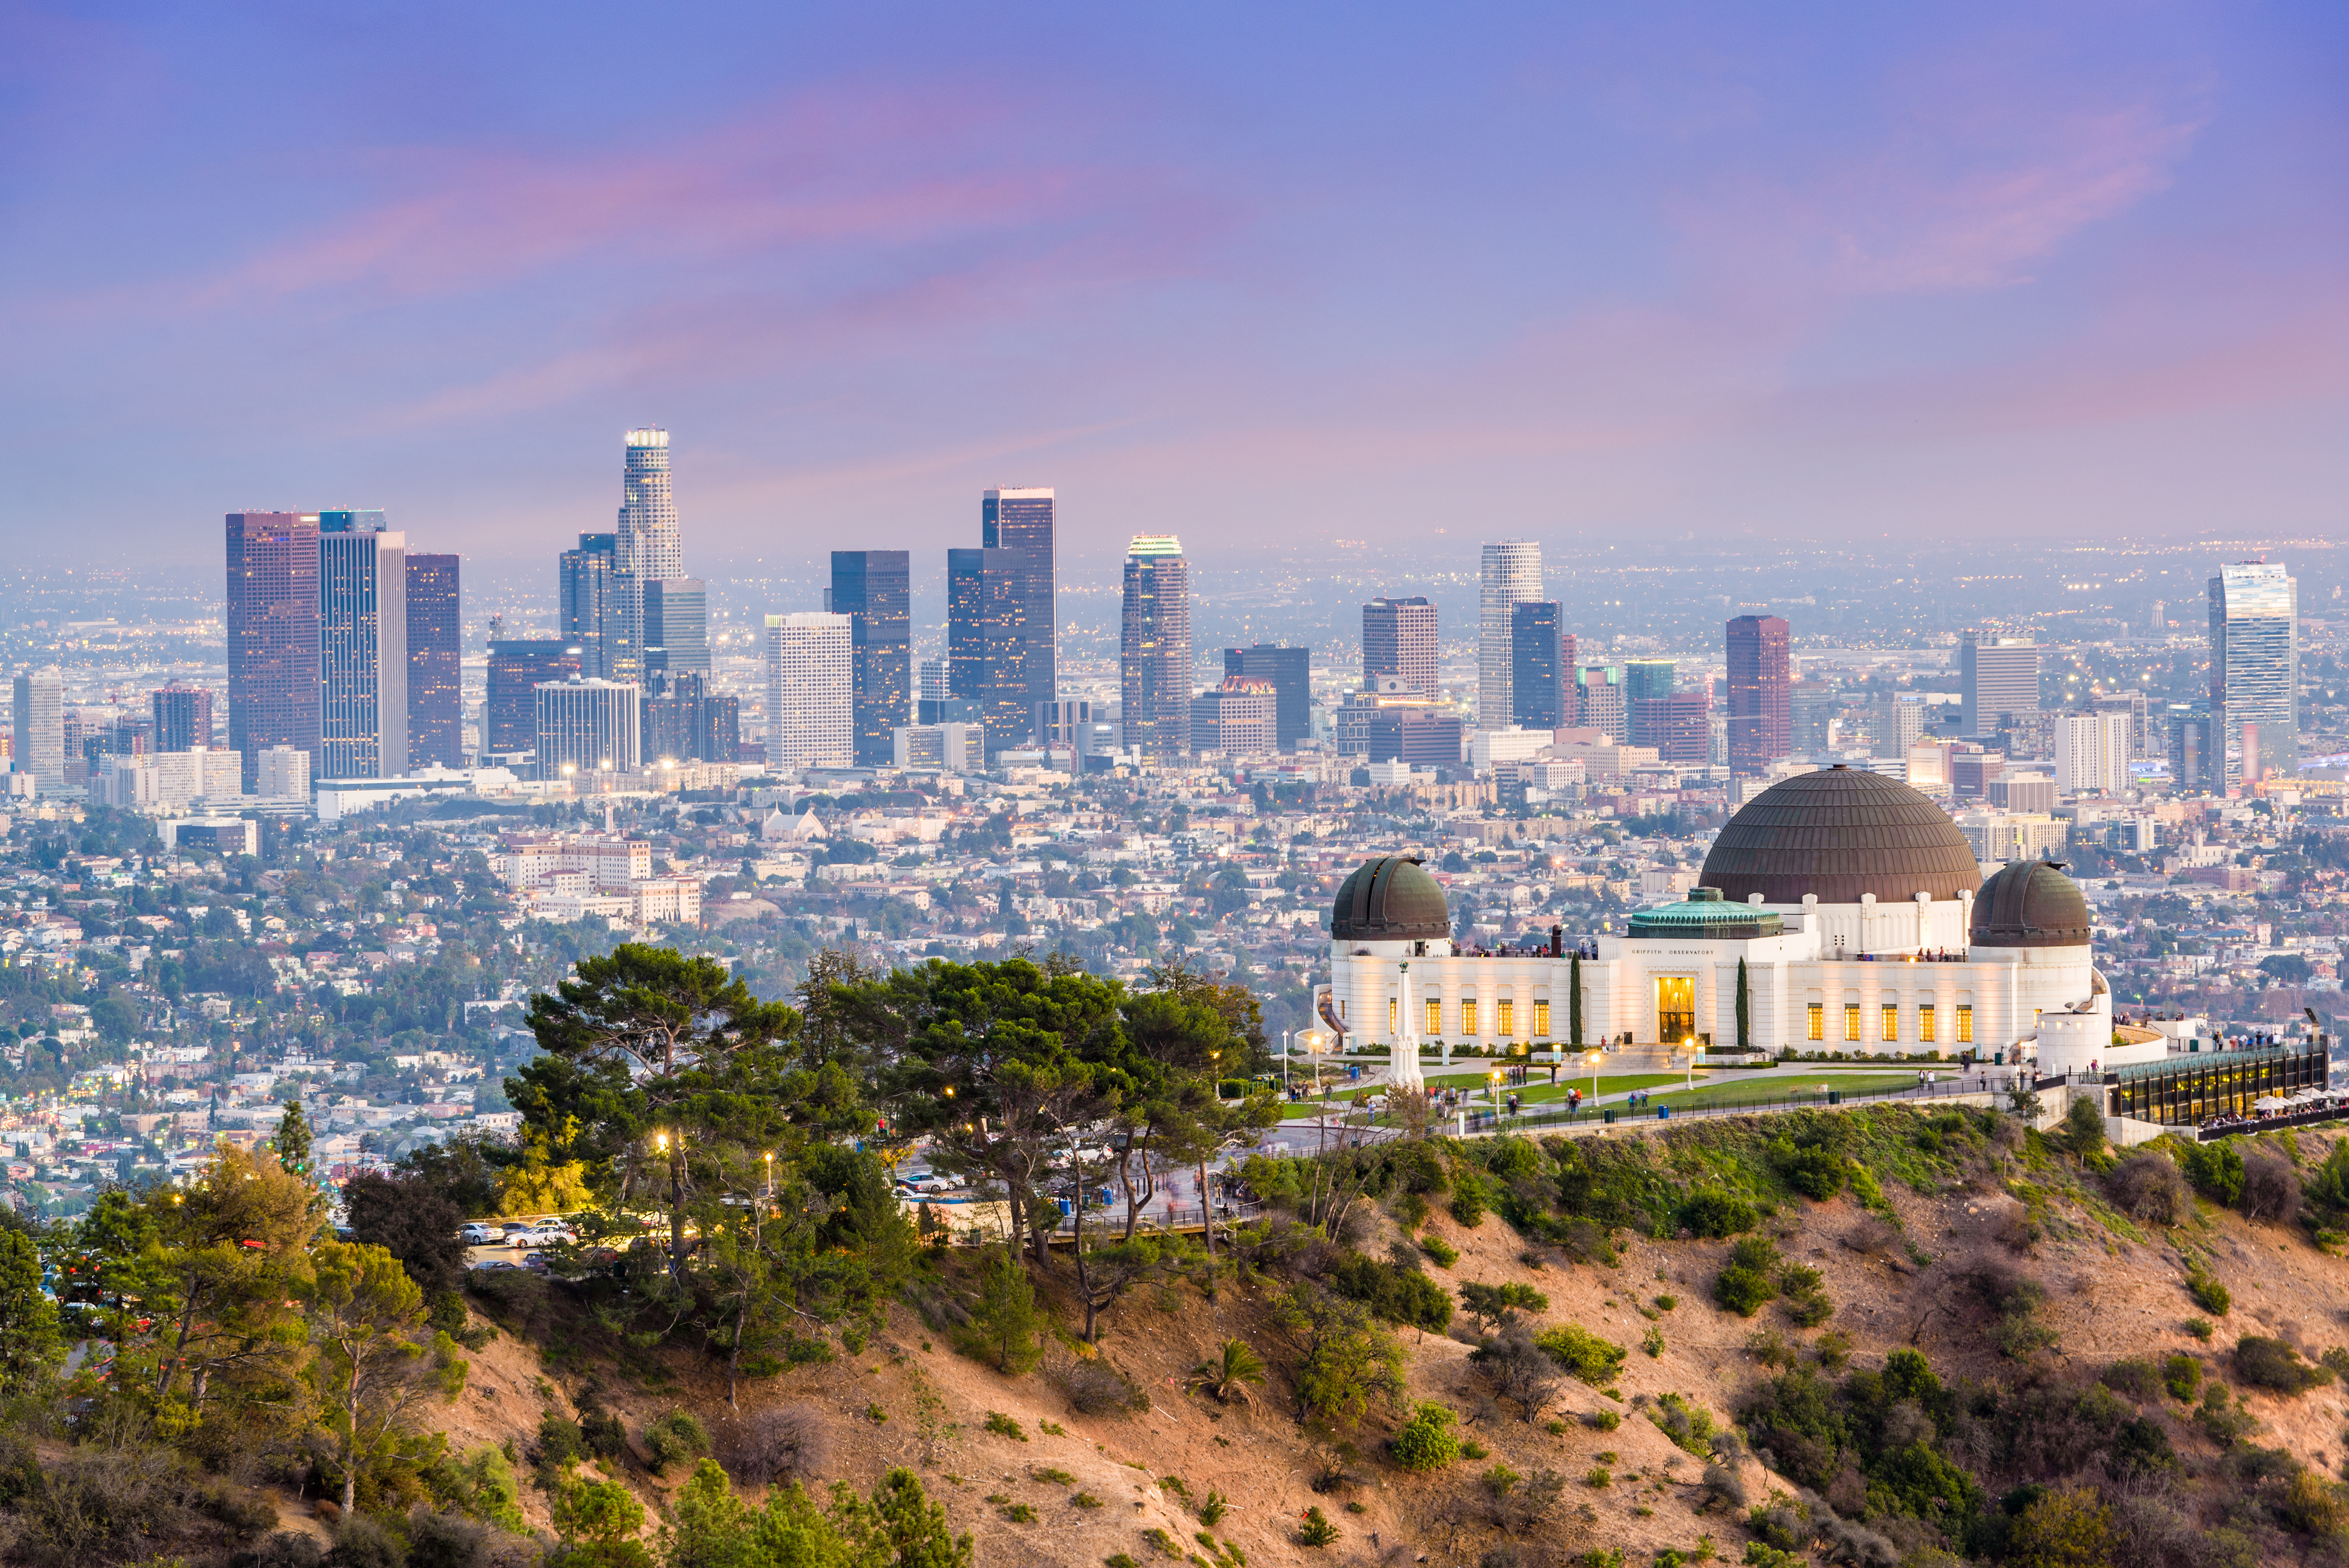 Downtown LA skyline from Griffith Park with Griffith Observatory